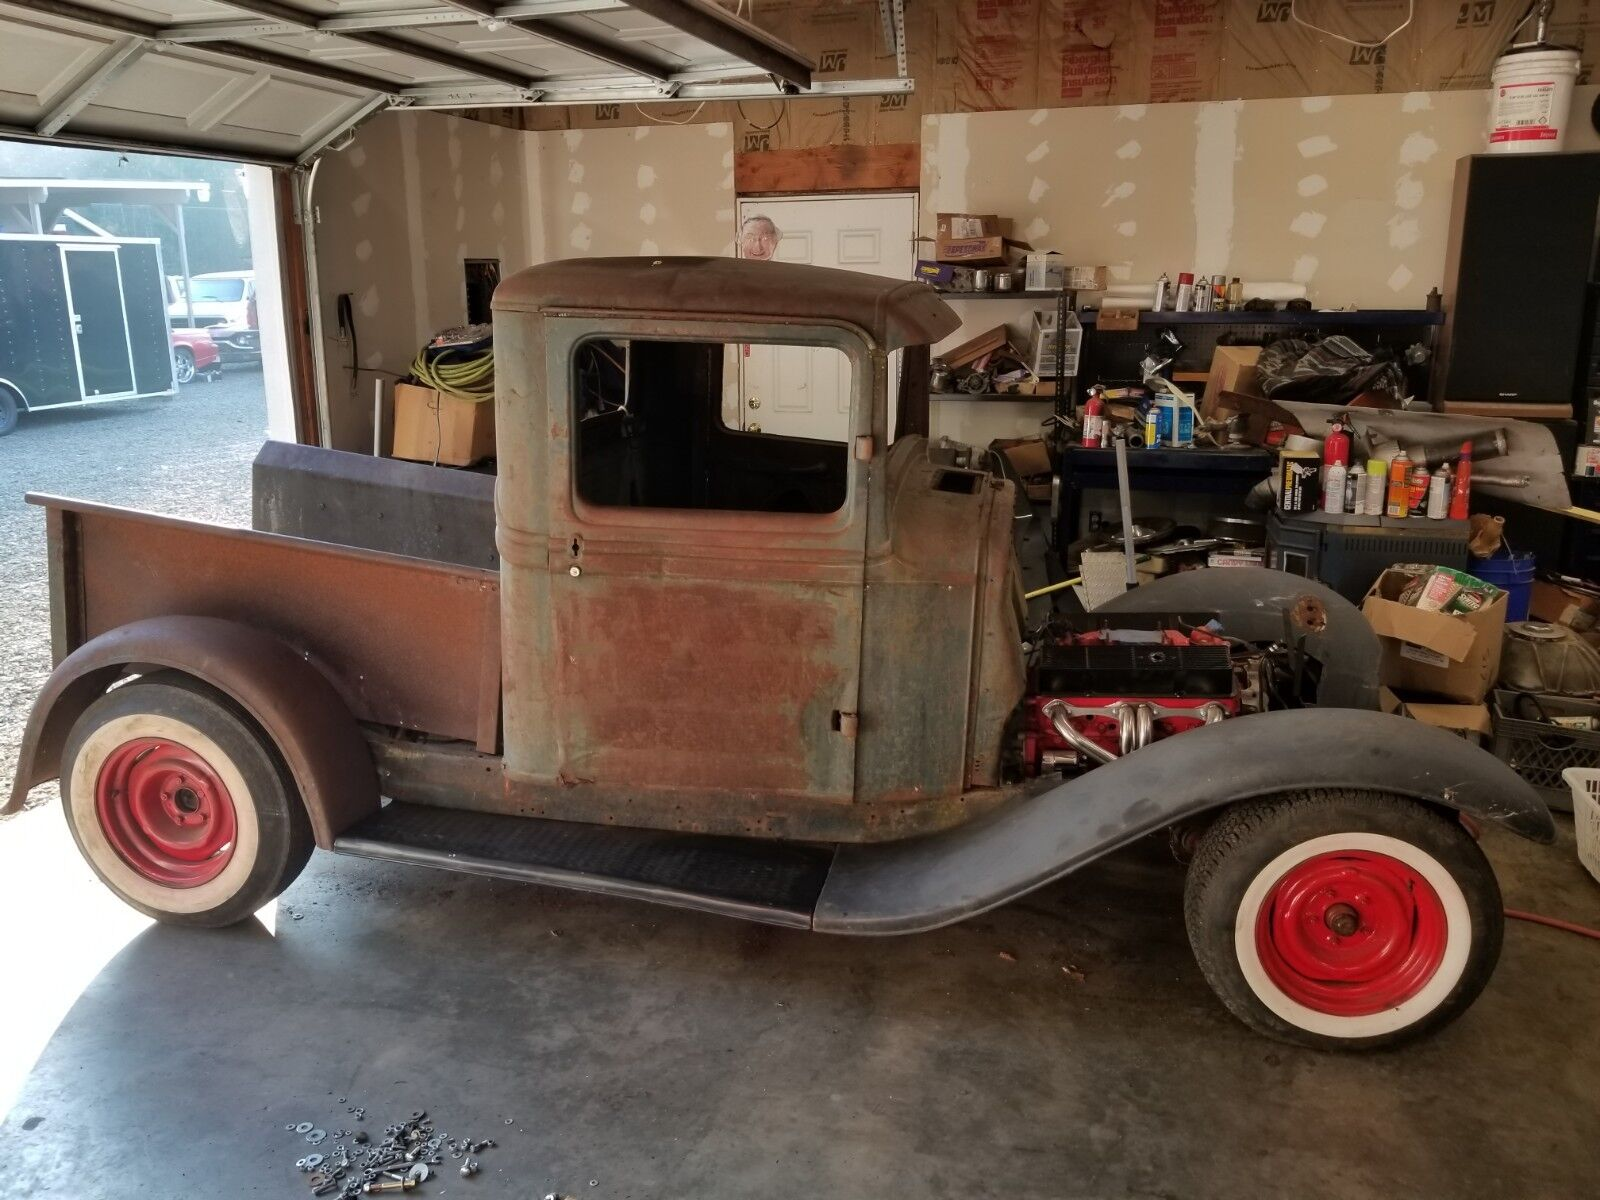 1934 Ford Other Pickups Hot Rod 1934 Ford Pickup, 350, 350, mustang II, Hot Rod Project Rat Rod 32 33 No Reserve